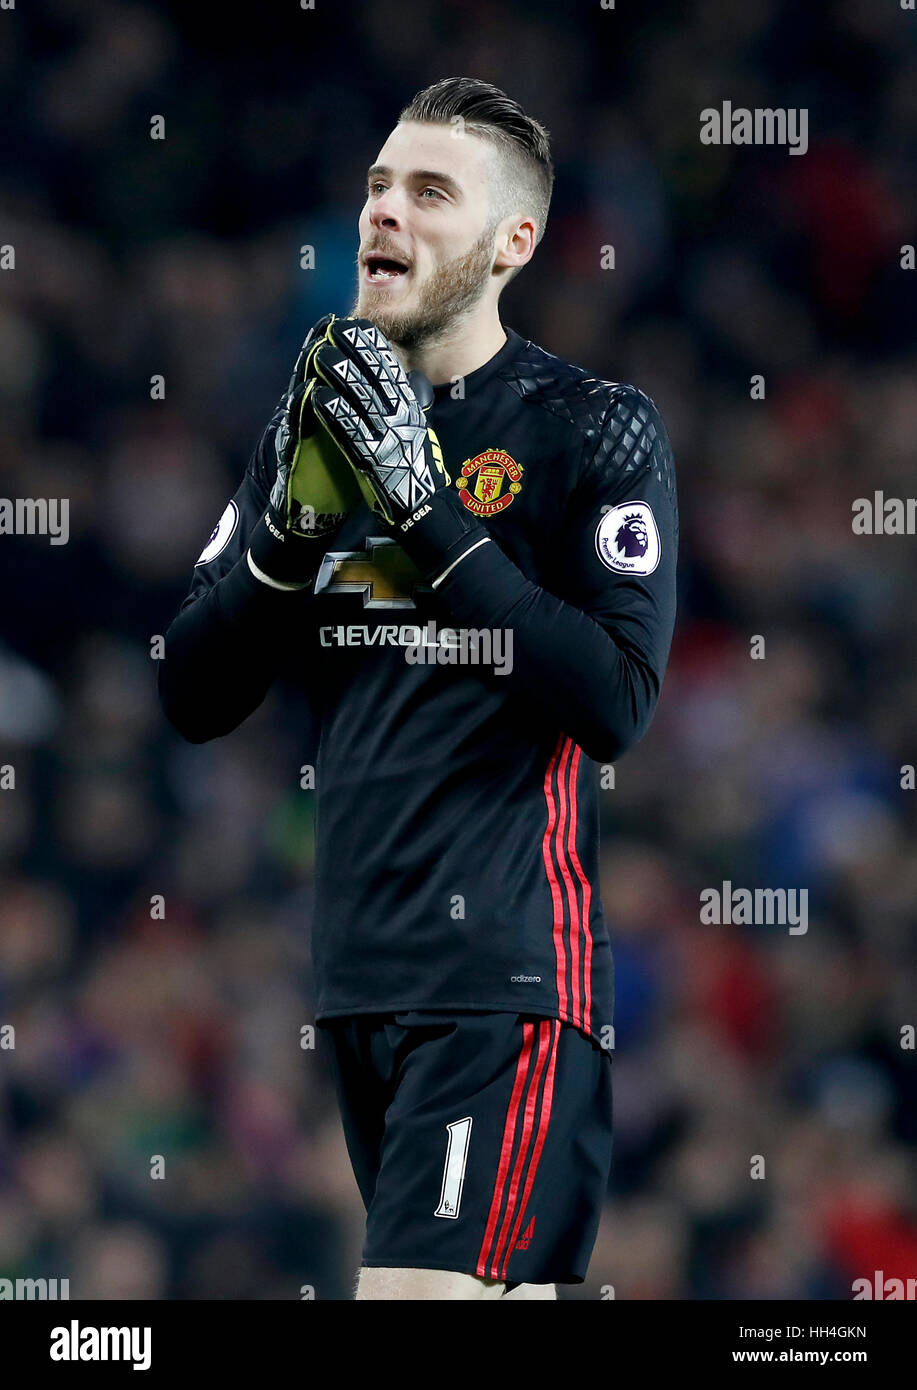 Manchester United goalkeeper David De Gea Stock Royalty